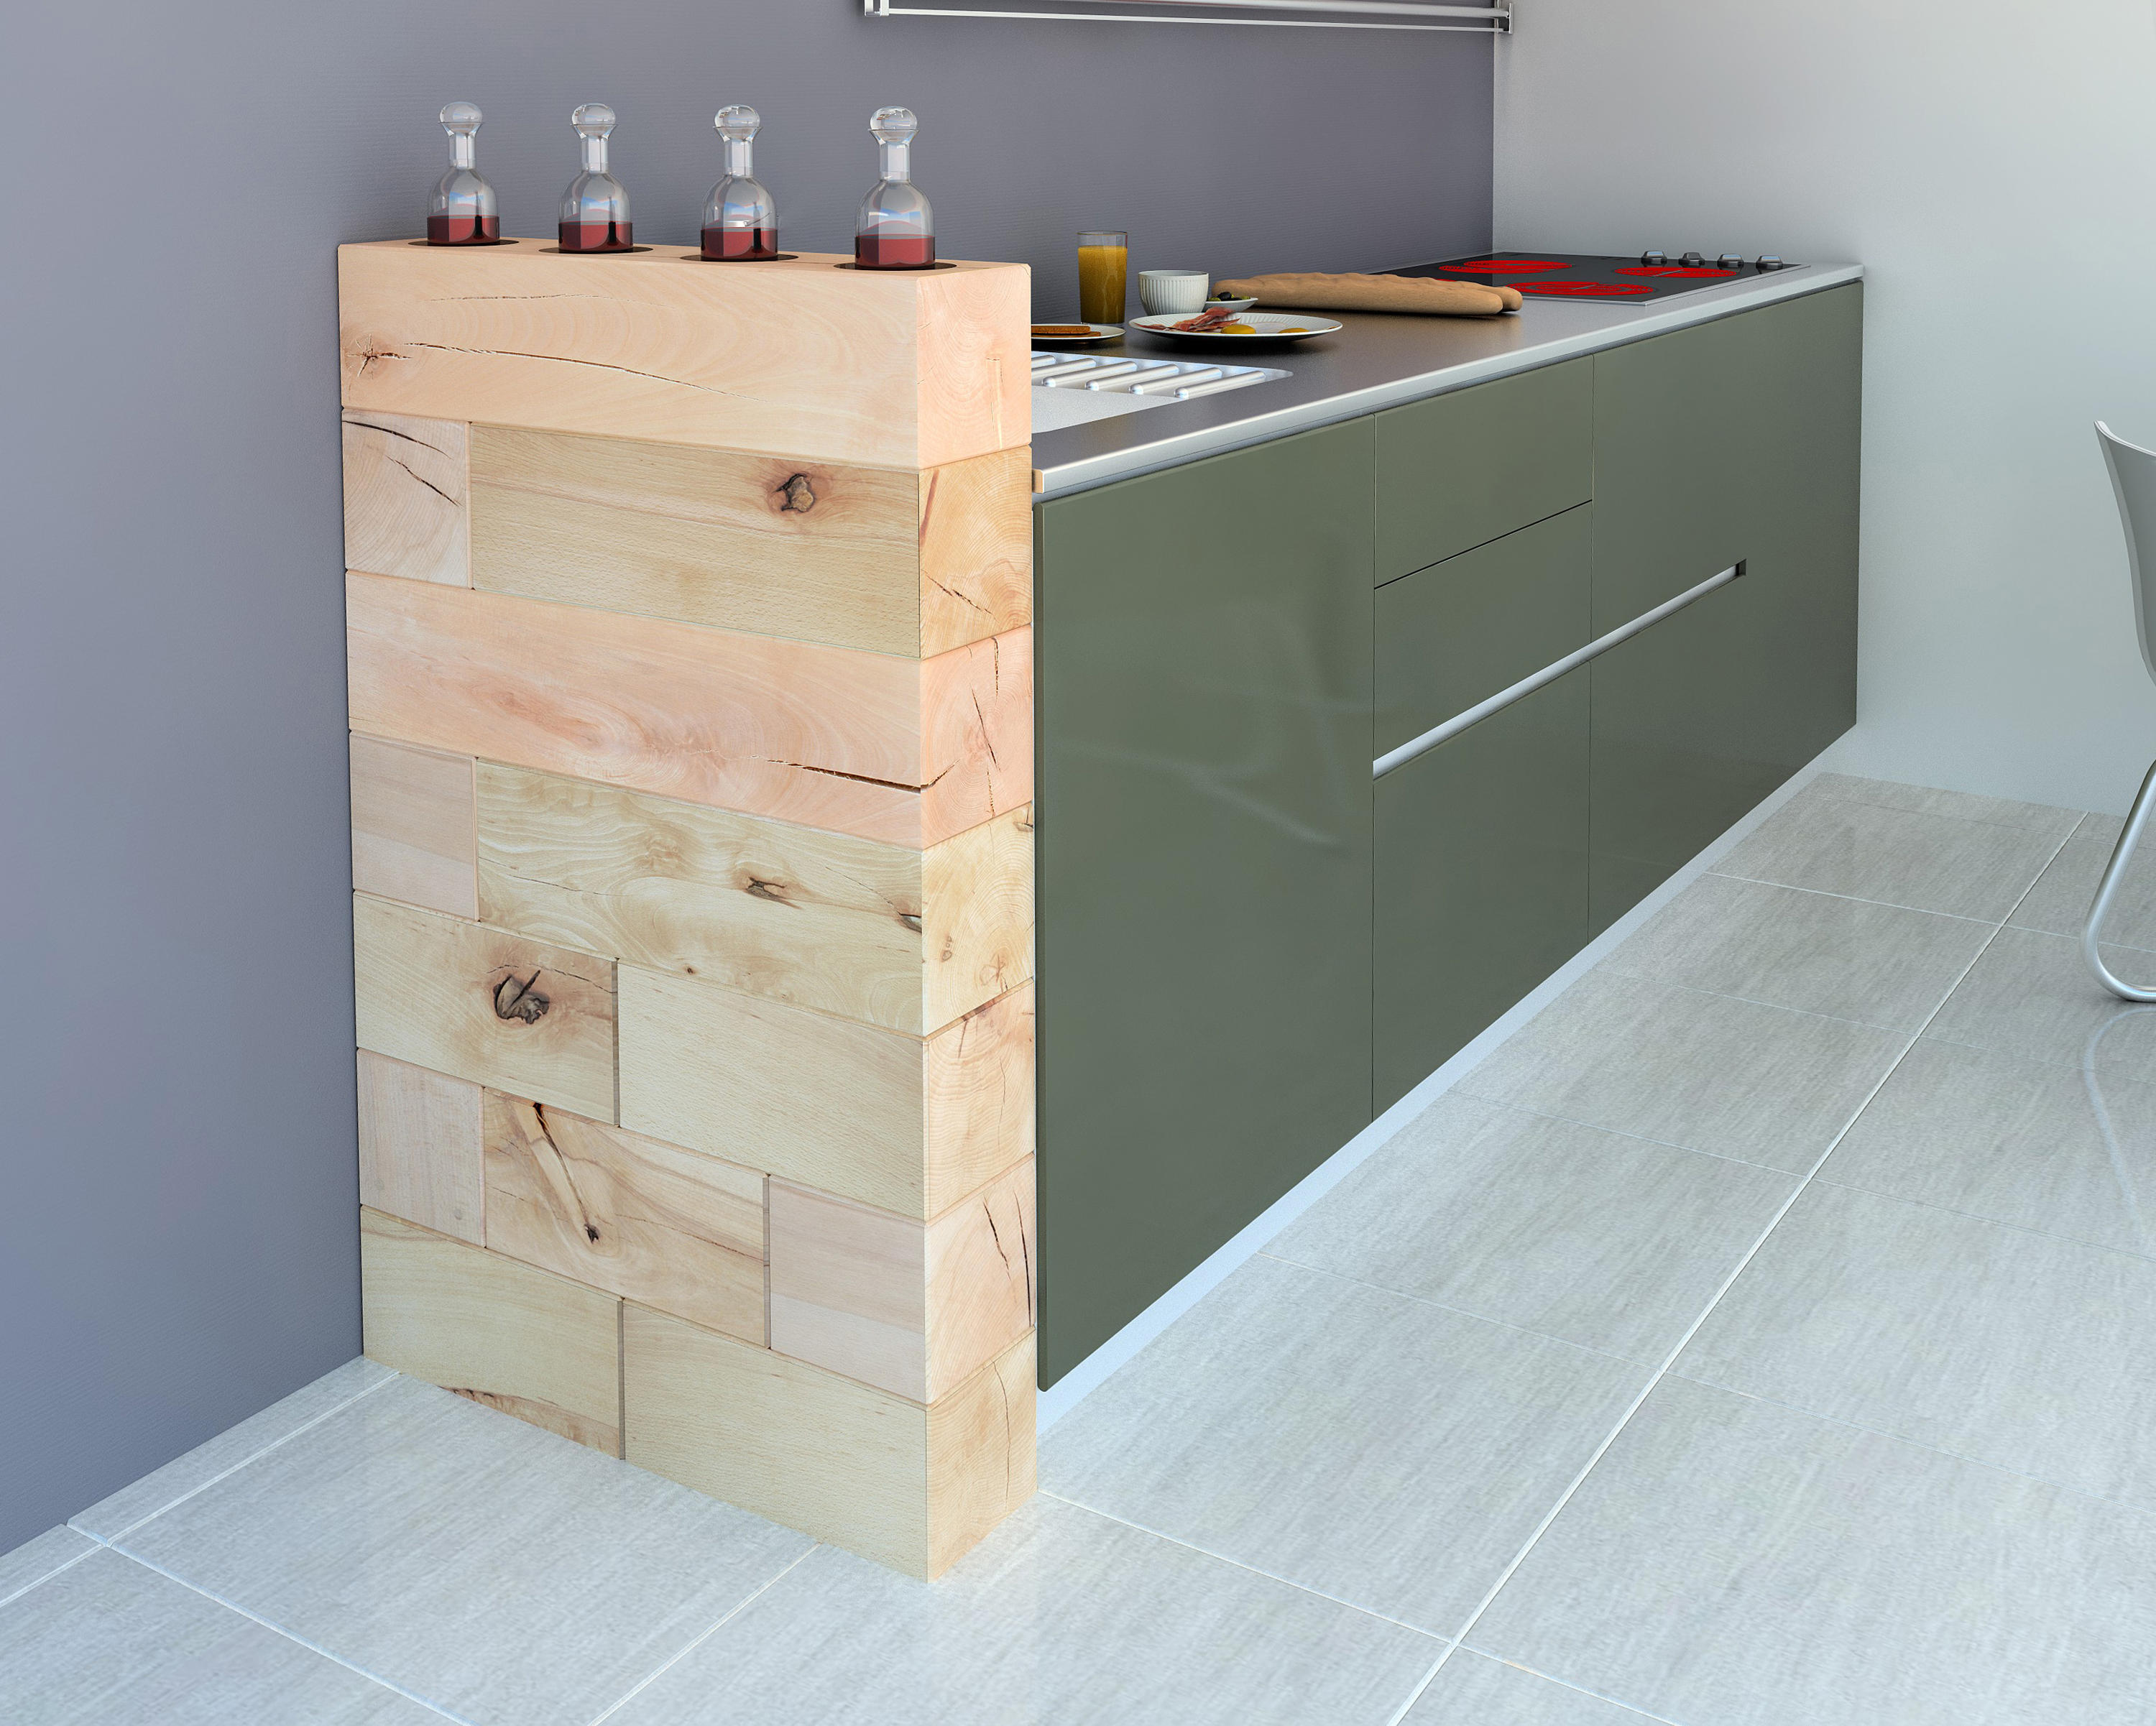 CRAFTWAND KITCHEN DESIGN Bespoke kitchens from Craftwand